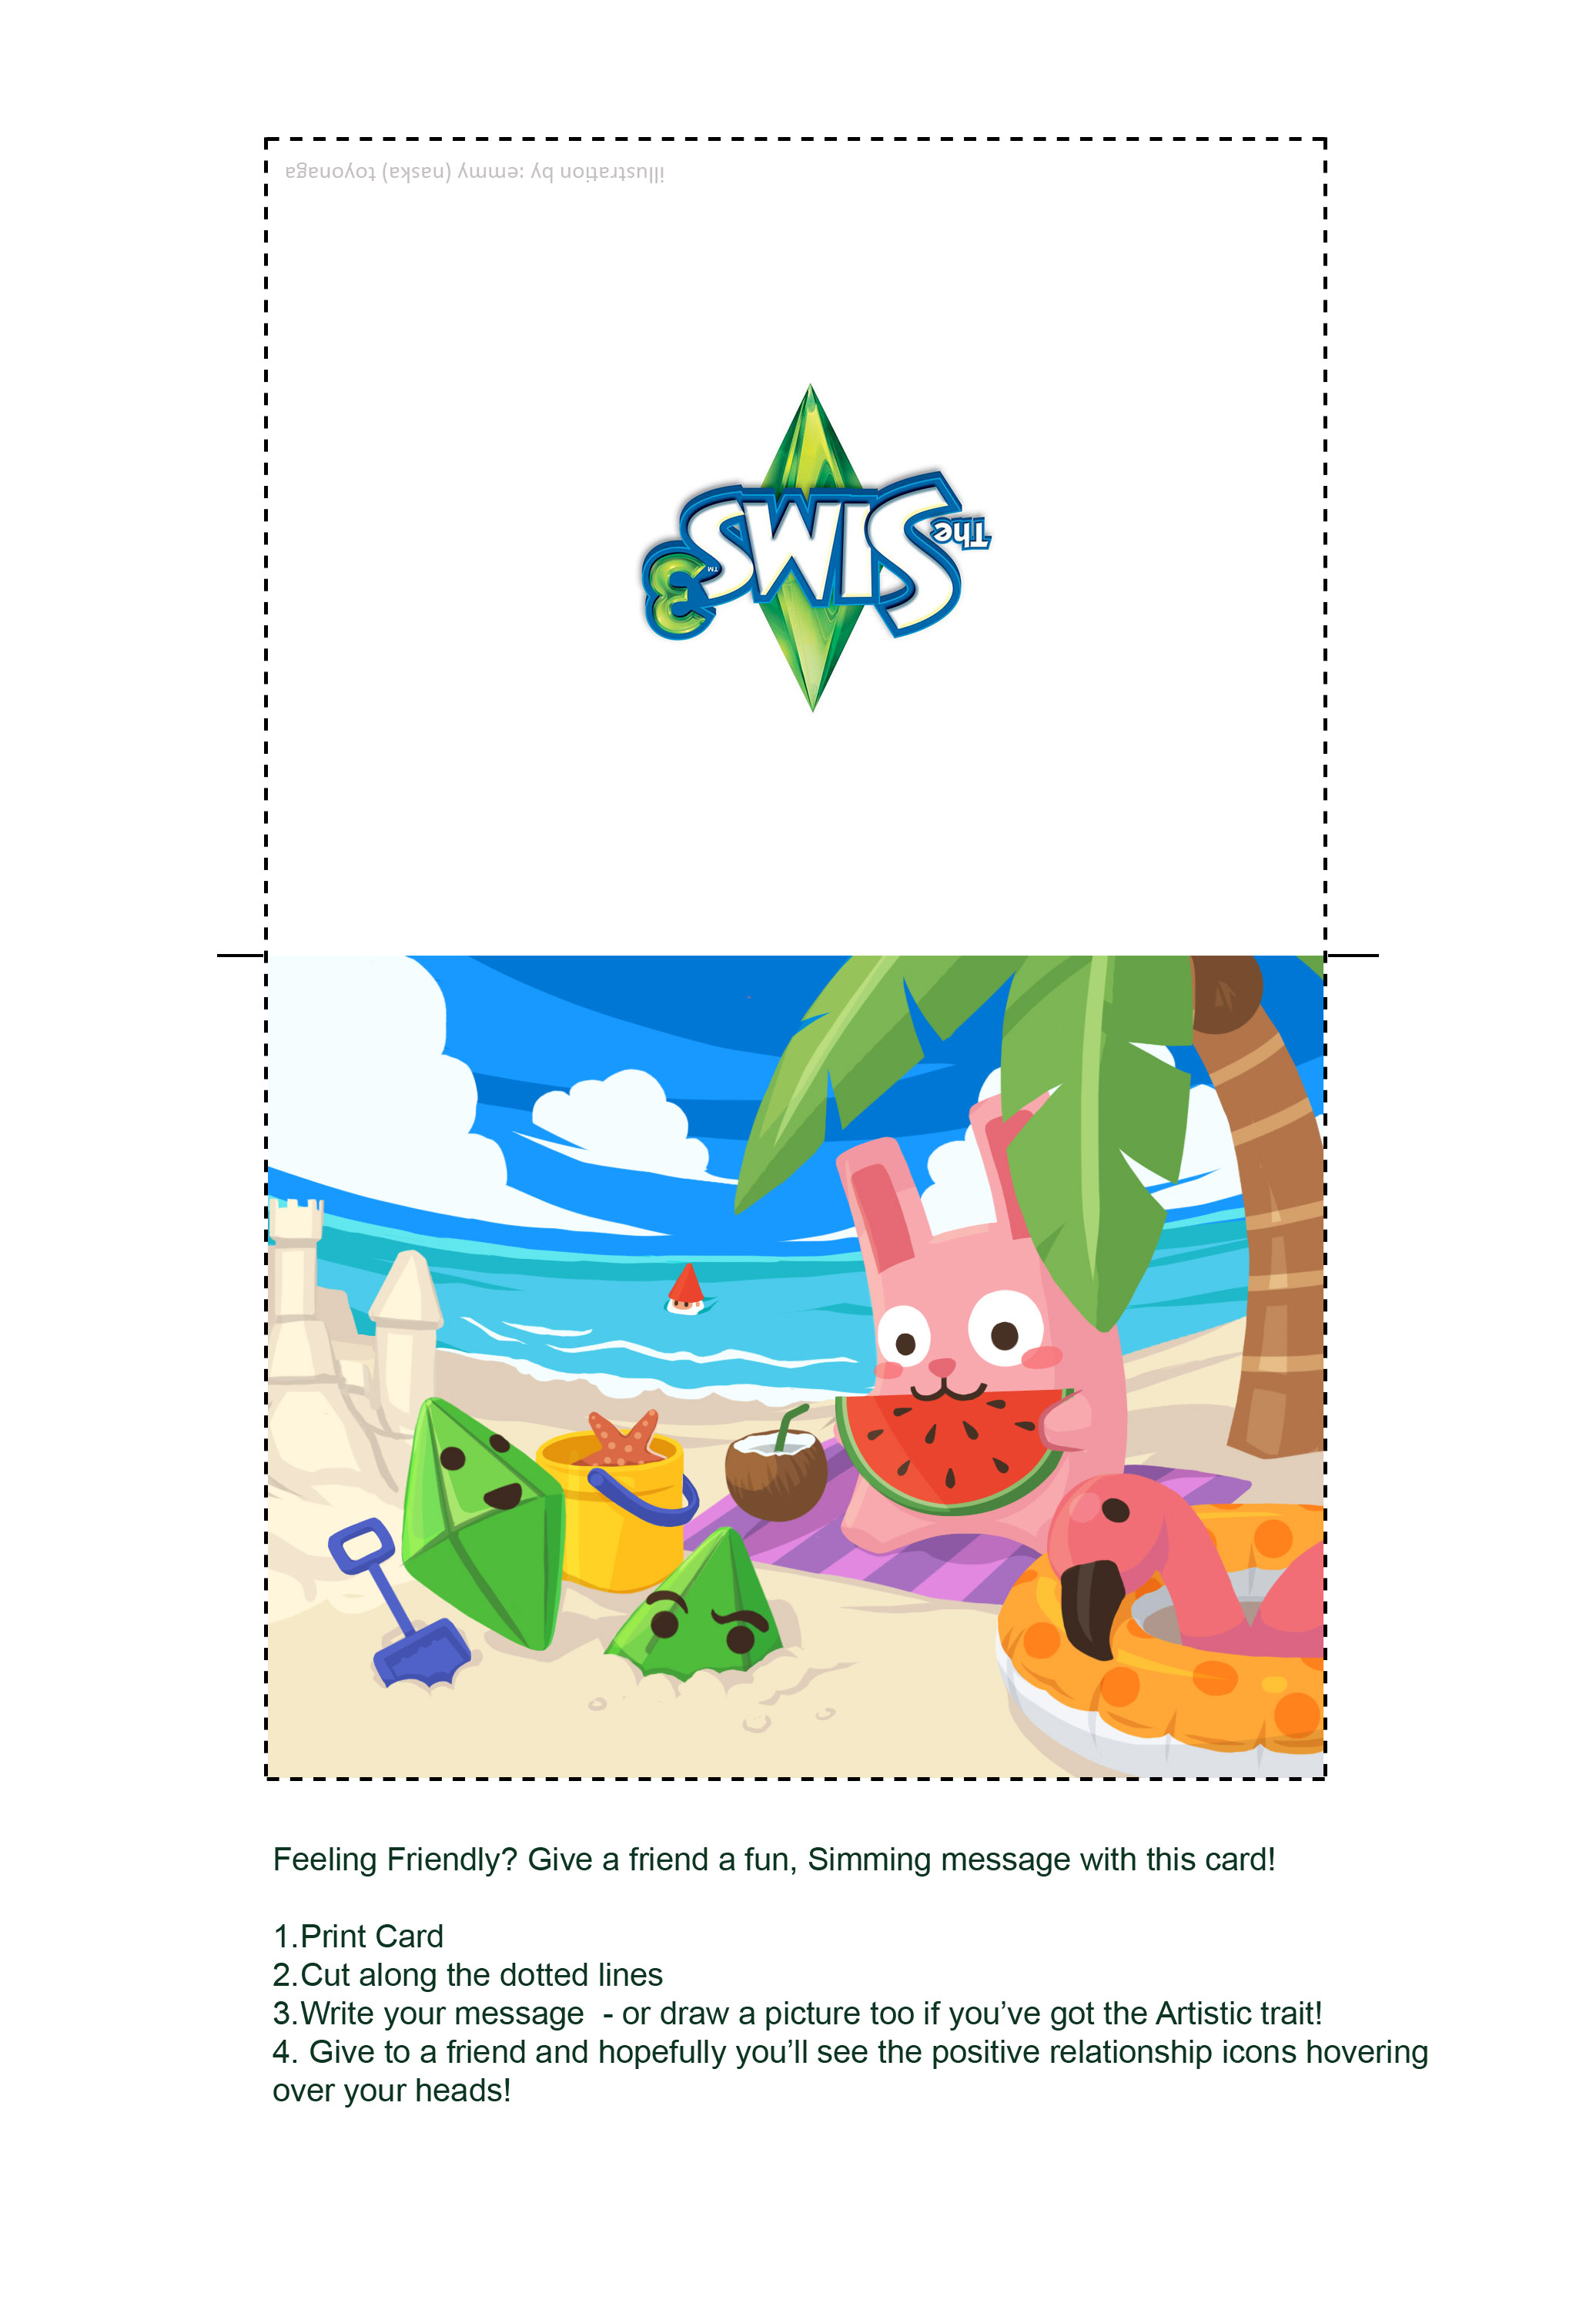 The Sims 3 Summer Greeting Card